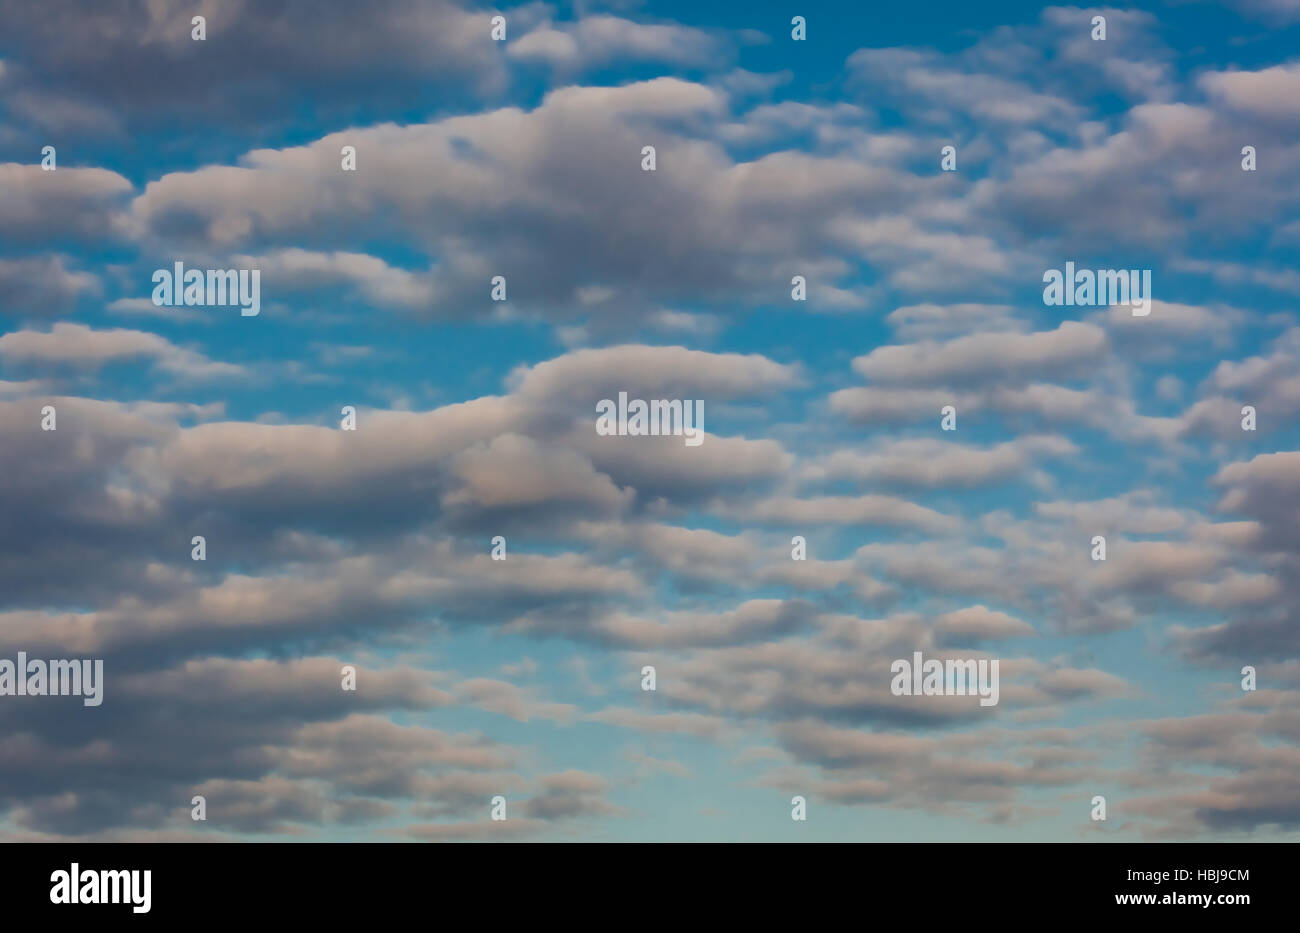 Cloudy sky background overlay stock photos cloudy sky background cloudy sky background overlay stock image thecheapjerseys Image collections